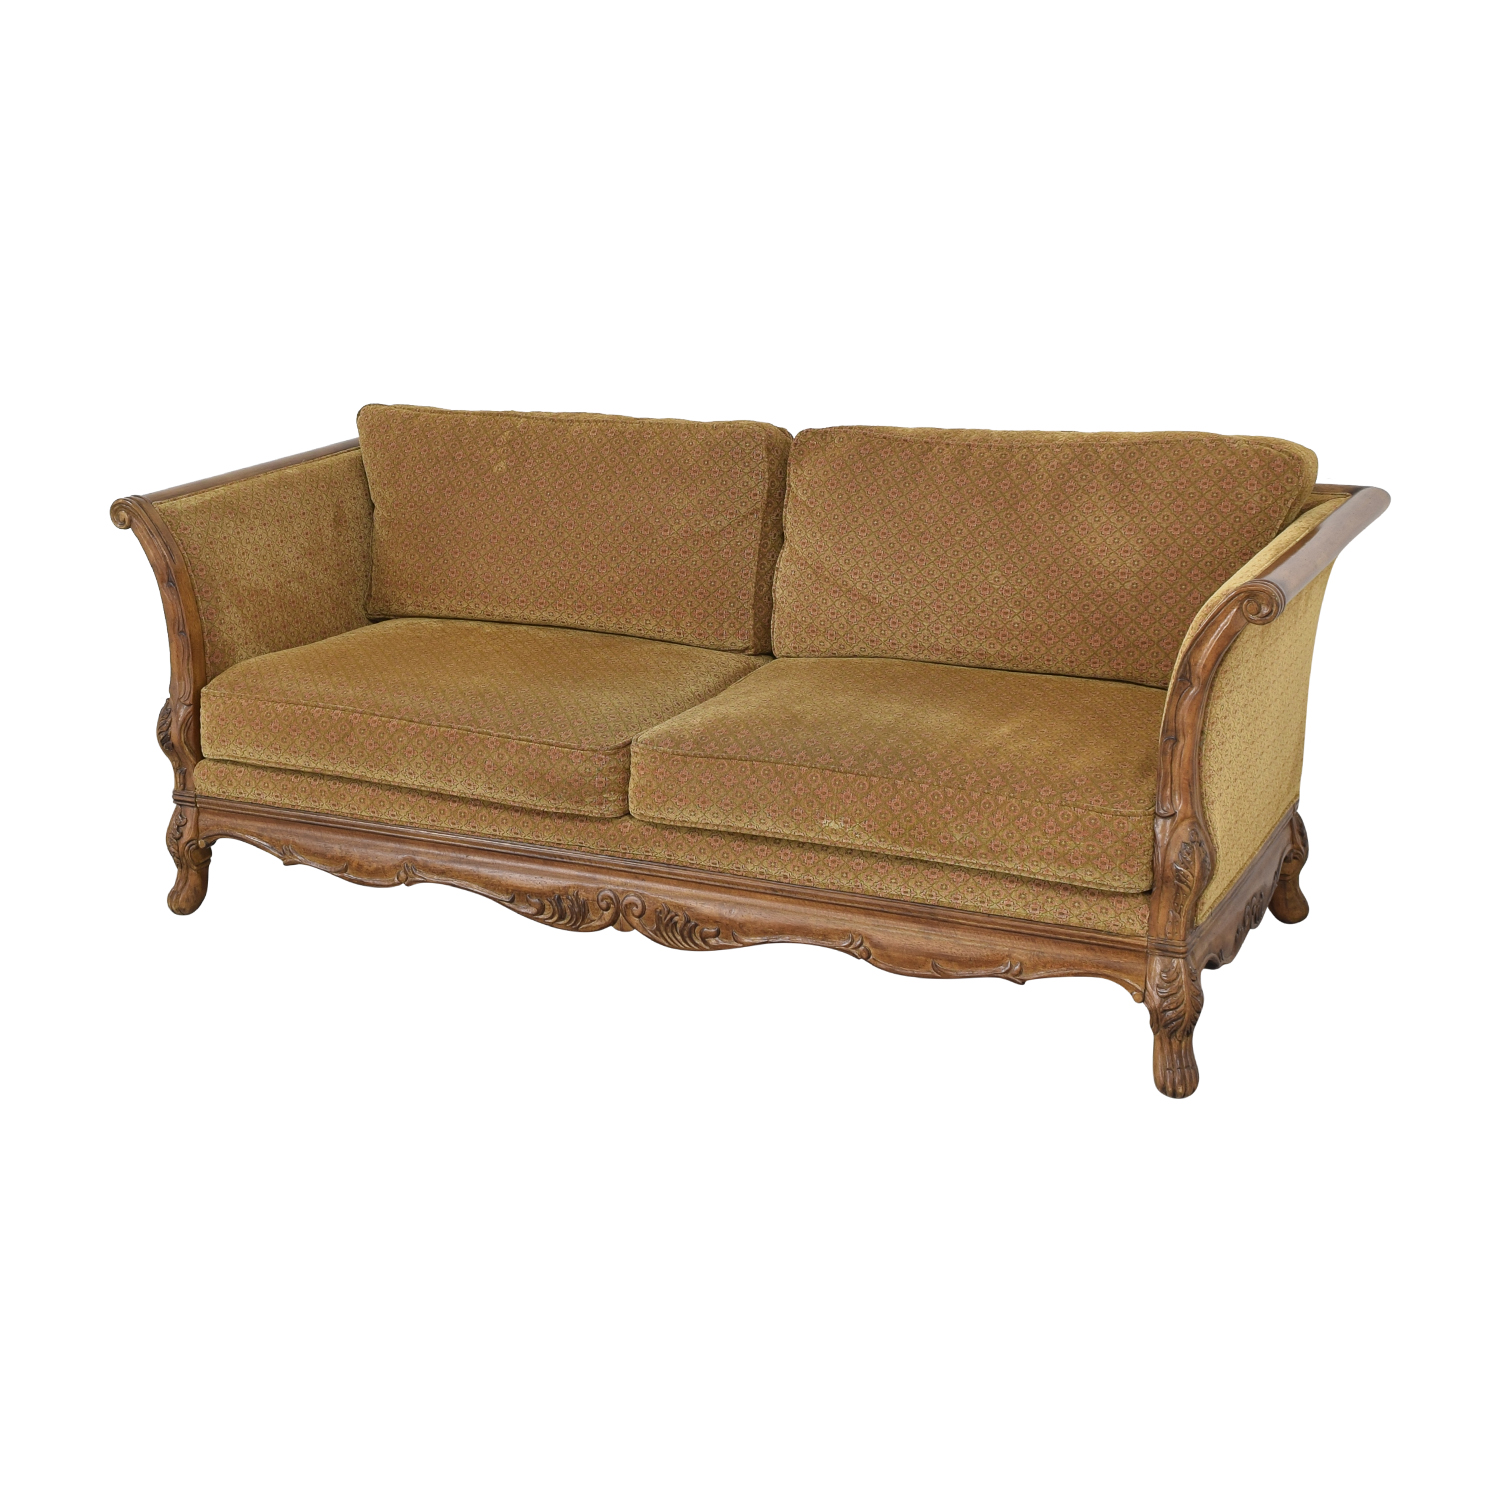 buy Bernhardt Bernhardt Traditional Sofa online